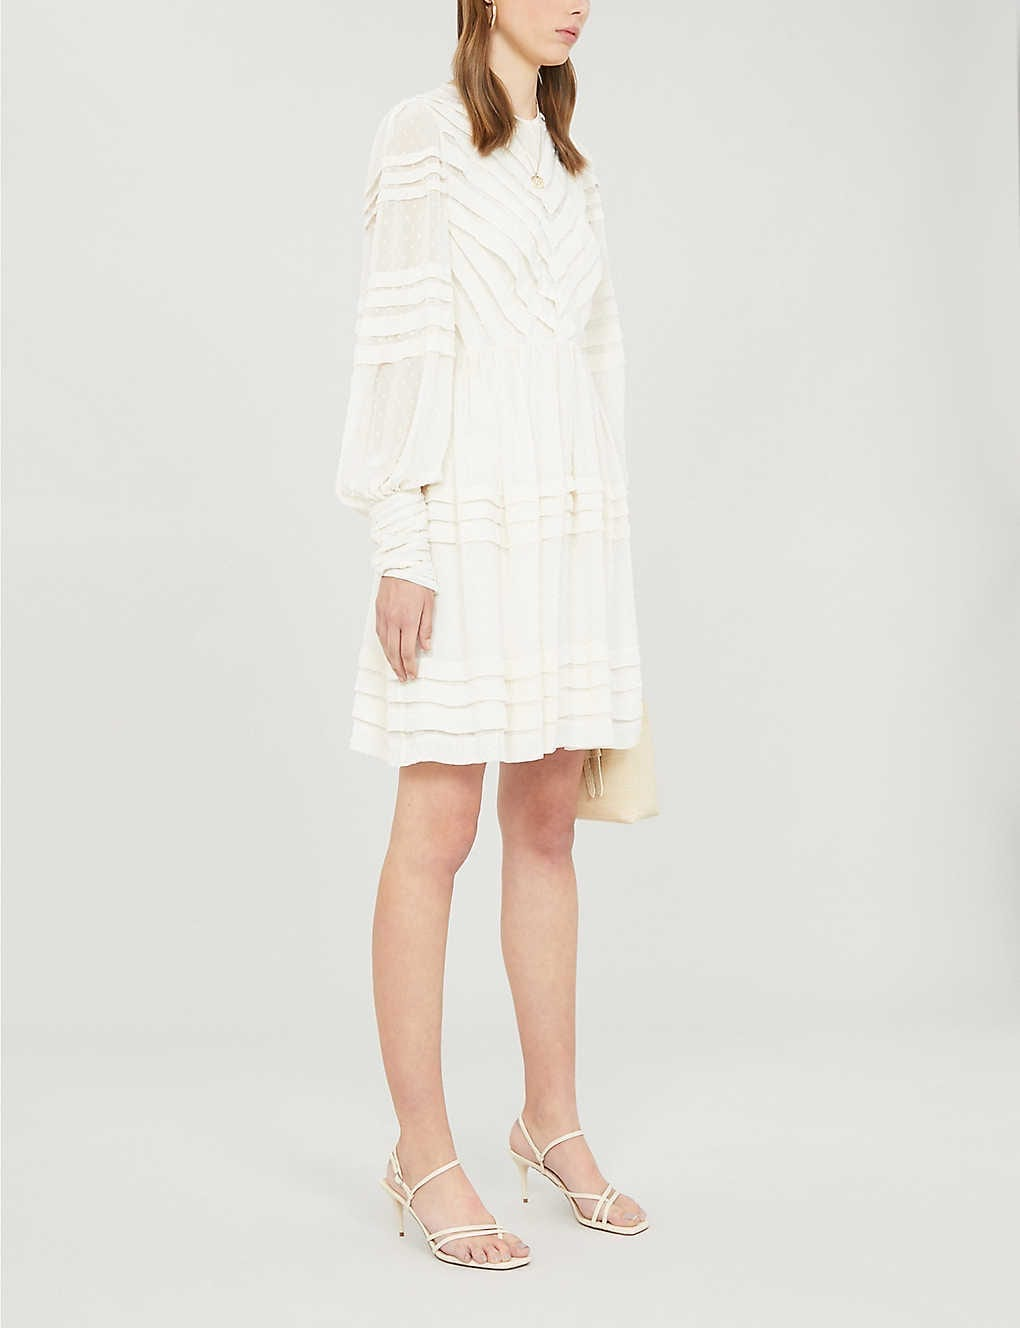 ZIMMERMANN Sabotage Crepe Mini Dress